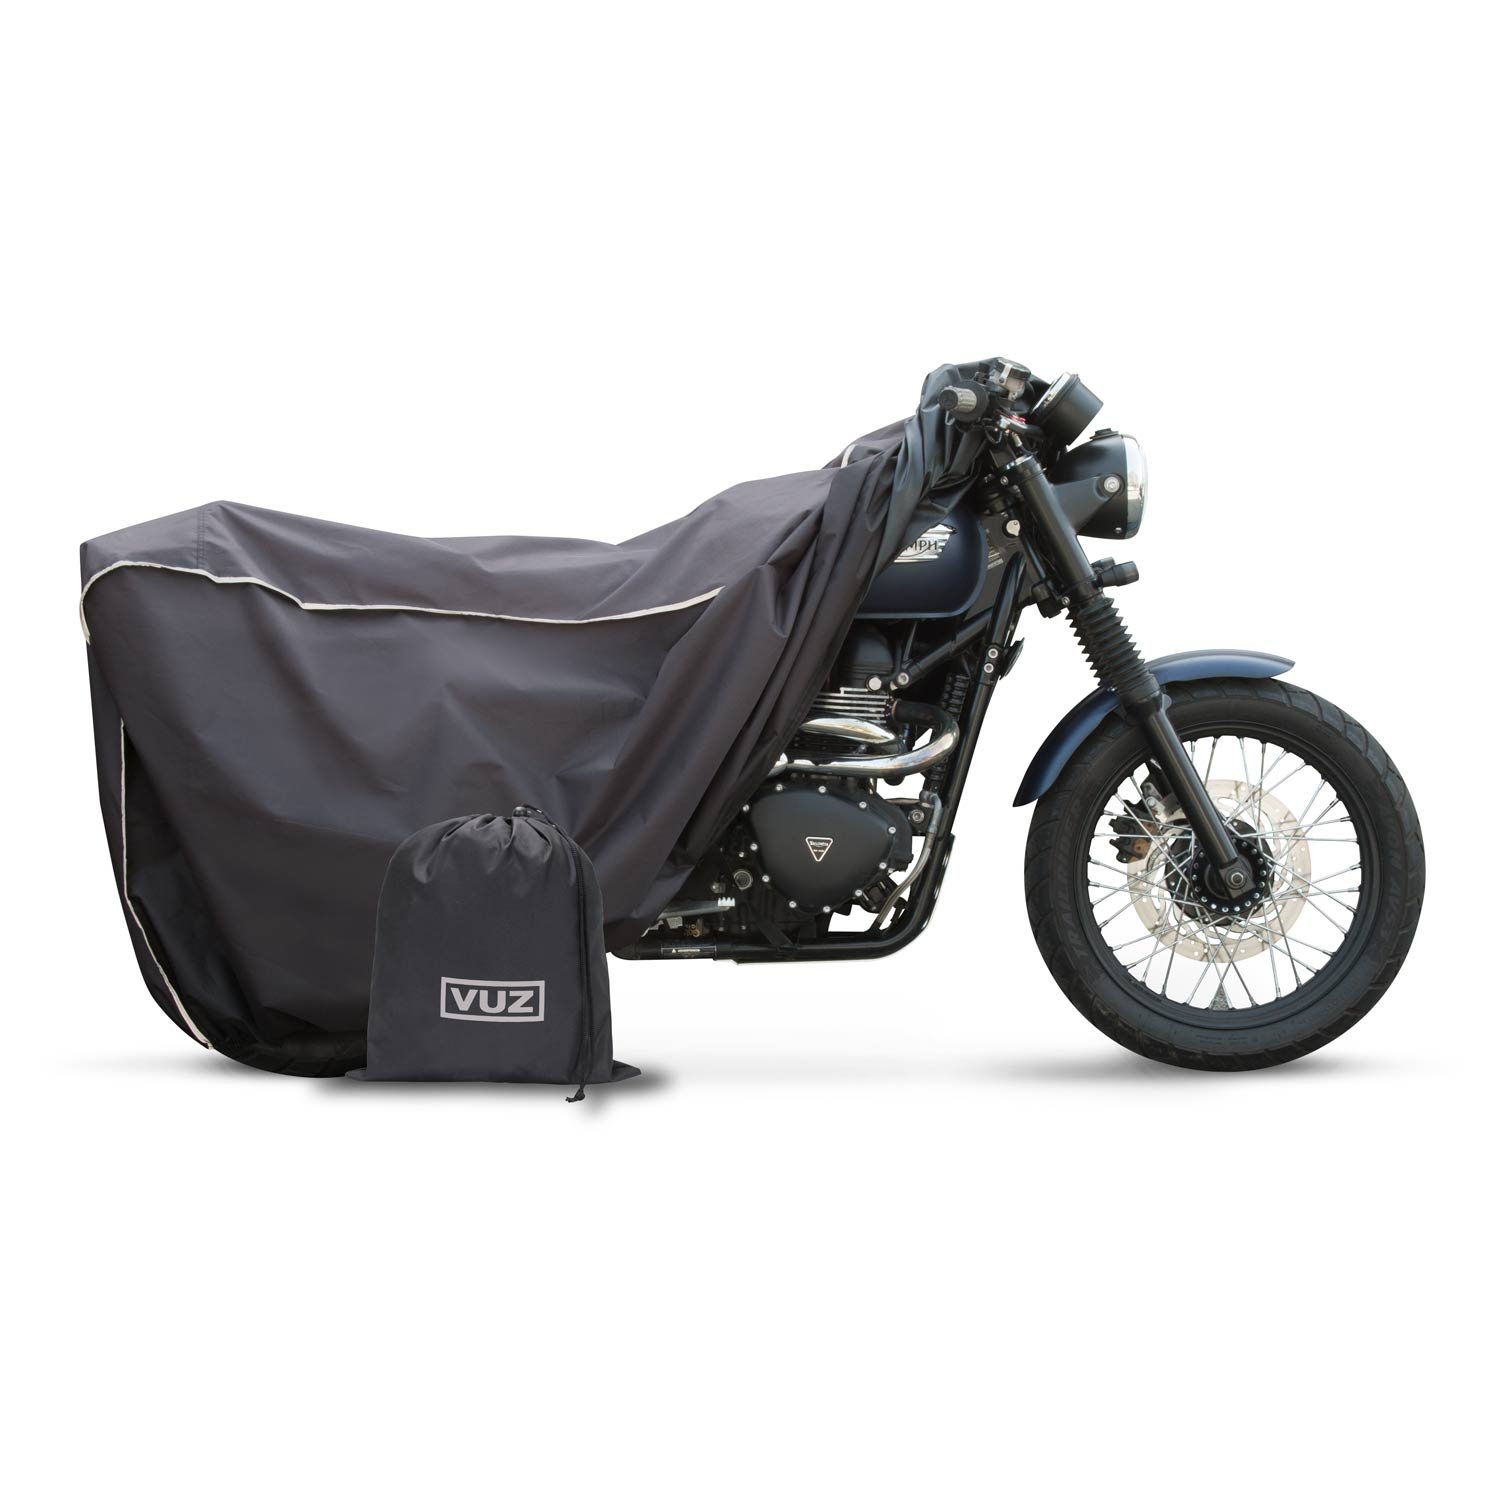 VUZ Moto Waterproof Motorcycle Covers | Premium Heavy Duty Polyester | All Weather Conditions for Adventure, Cruisers, and Classic Bikes | Extra-Large, Black